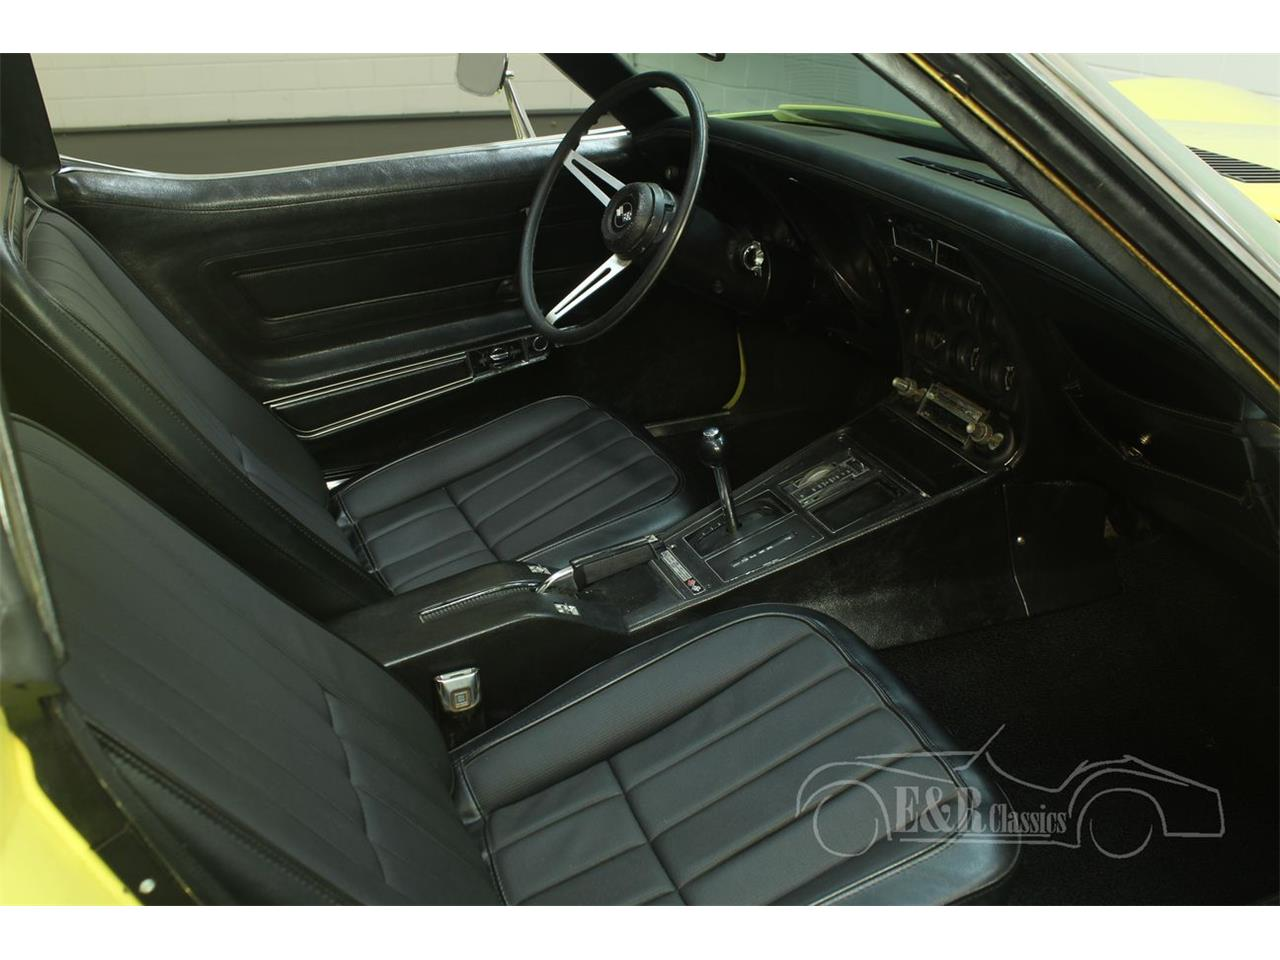 Large Picture of 1974 Corvette located in noord brabant Offered by E & R Classics - Q3R0